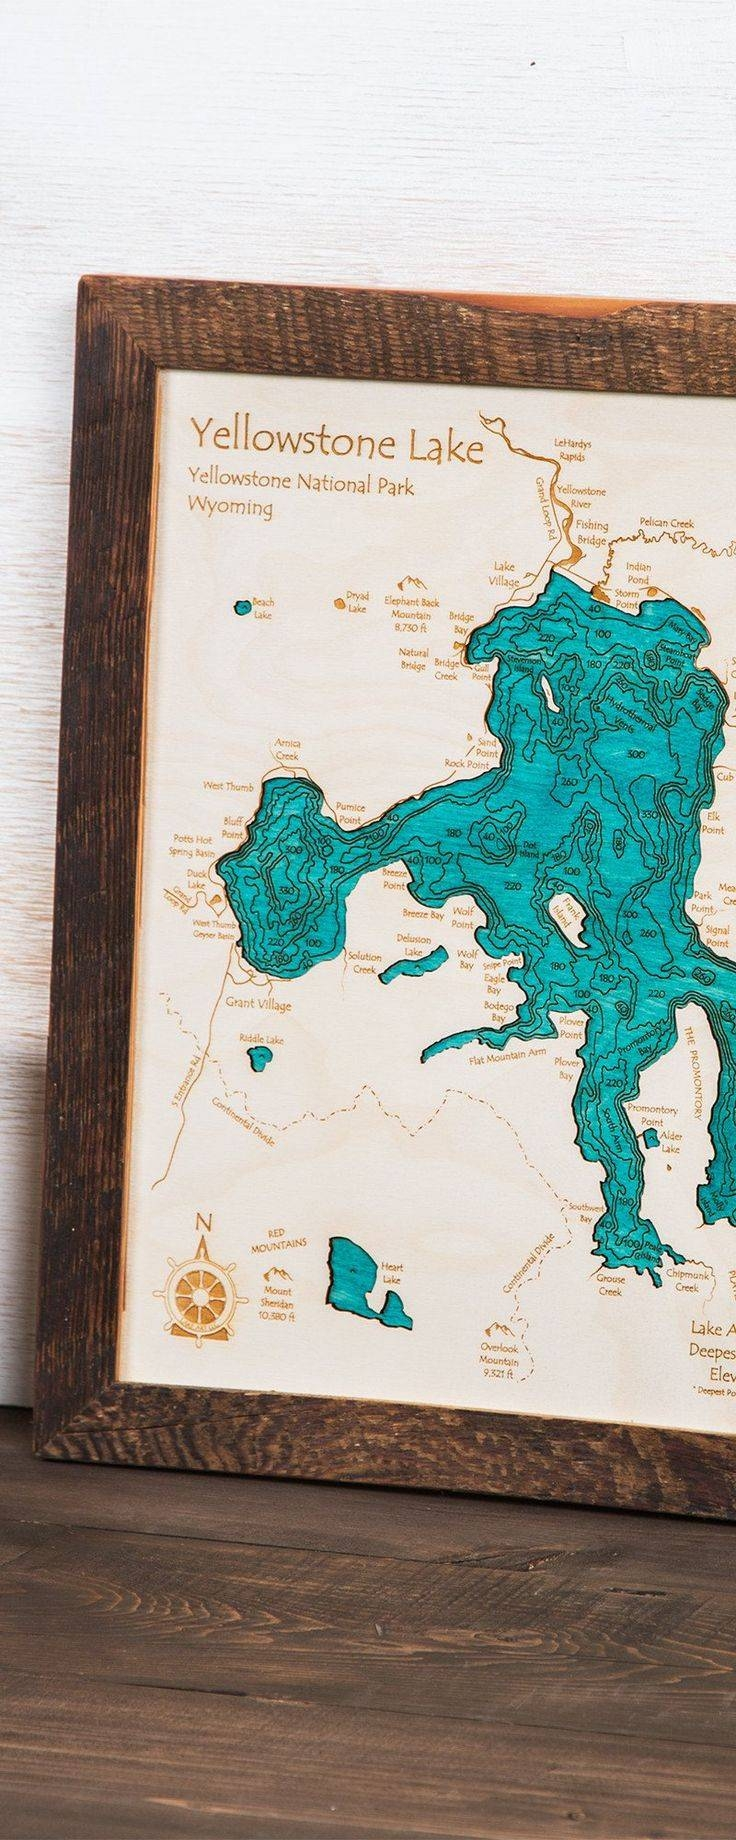 30 Best Map Art Images On Pinterest | Map Art, Baltic Birch And intended for Recent Lake Map Wall Art